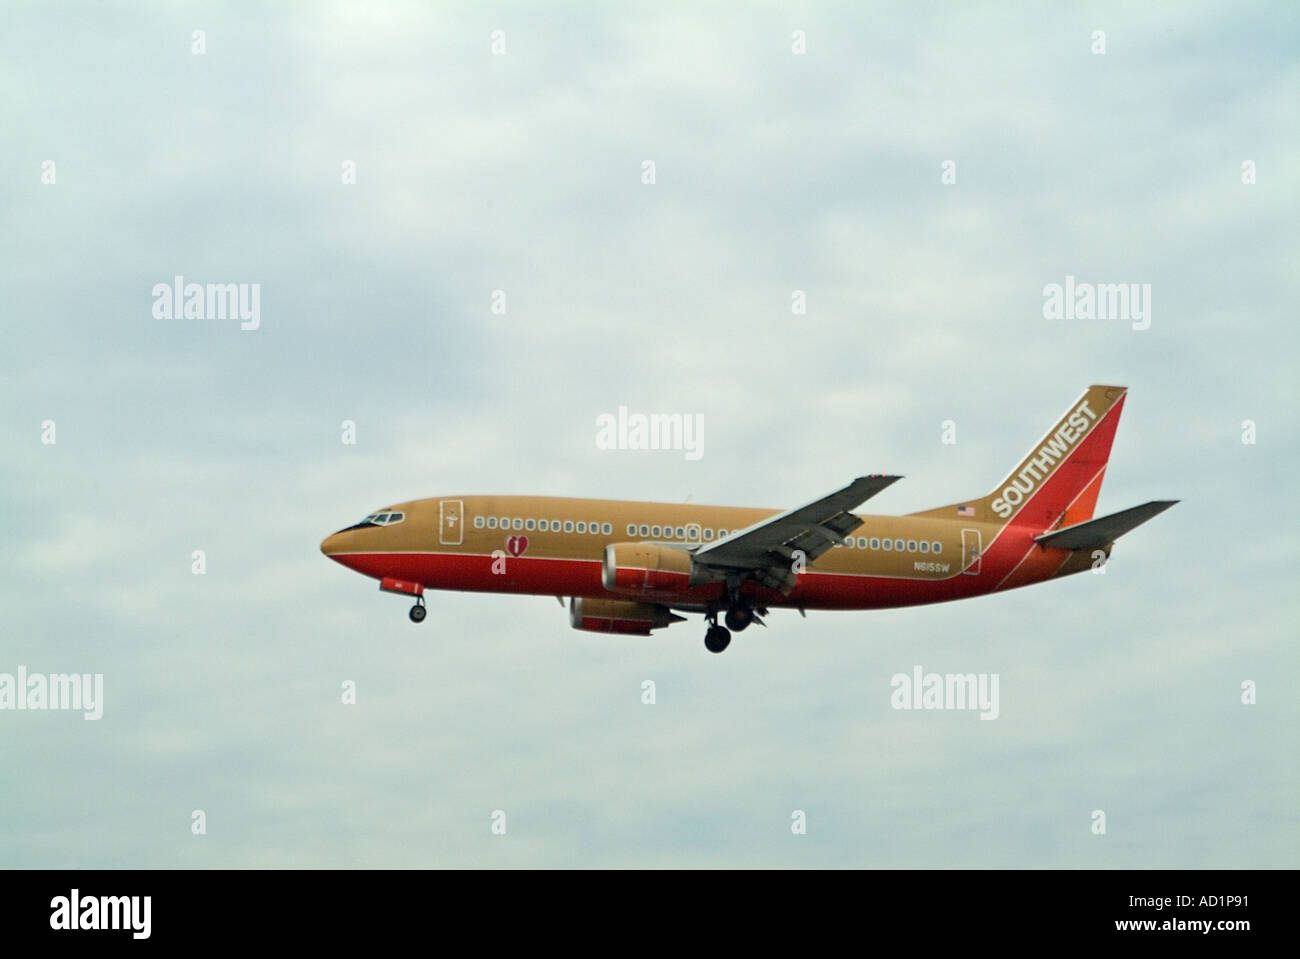 Southwest Airlines Airplane landing wheels down low altitude on approach to LAX - Stock Image